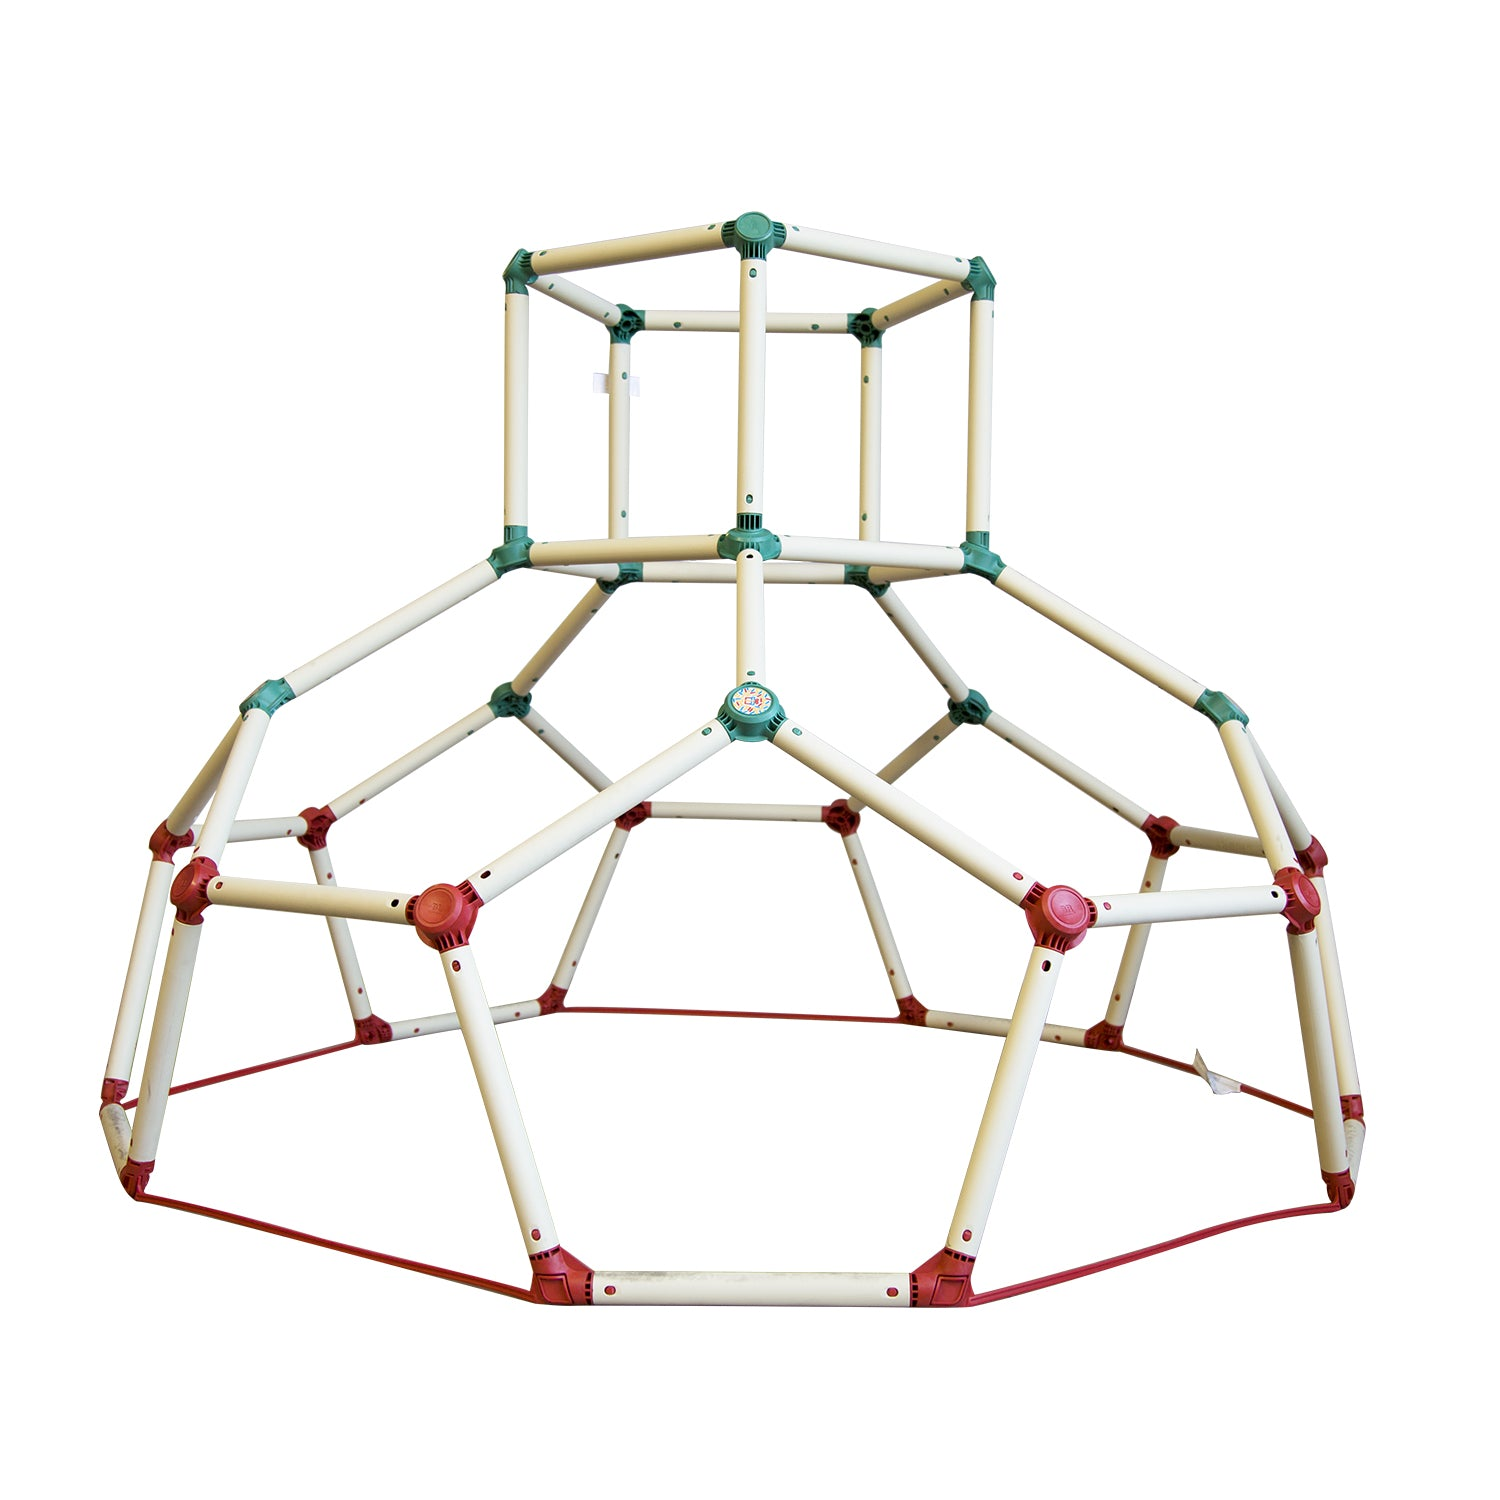 Lifespan Kids Outdoor Dome Climber